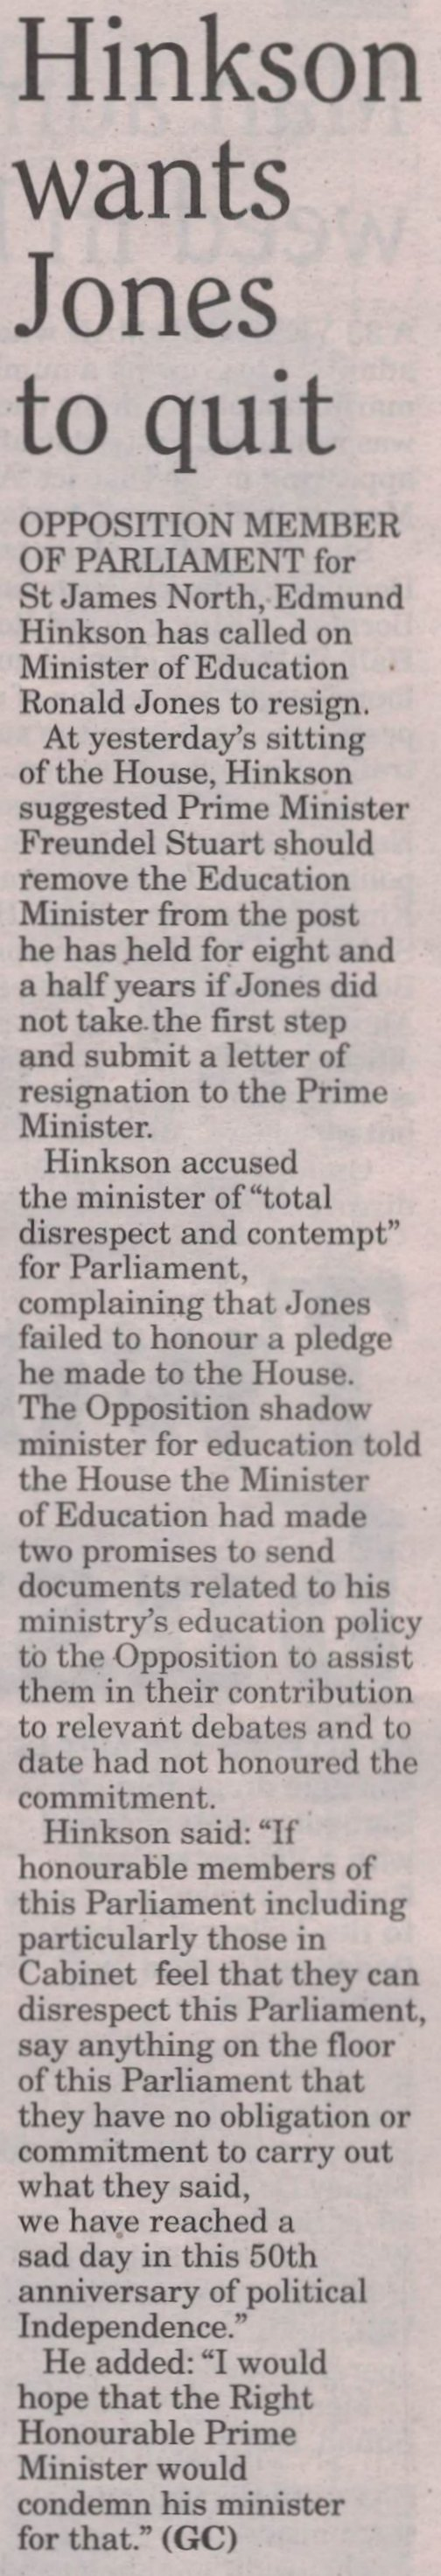 2016-05-04 - Midweek Nation - Page17A - Hinkson wants Jones to quit